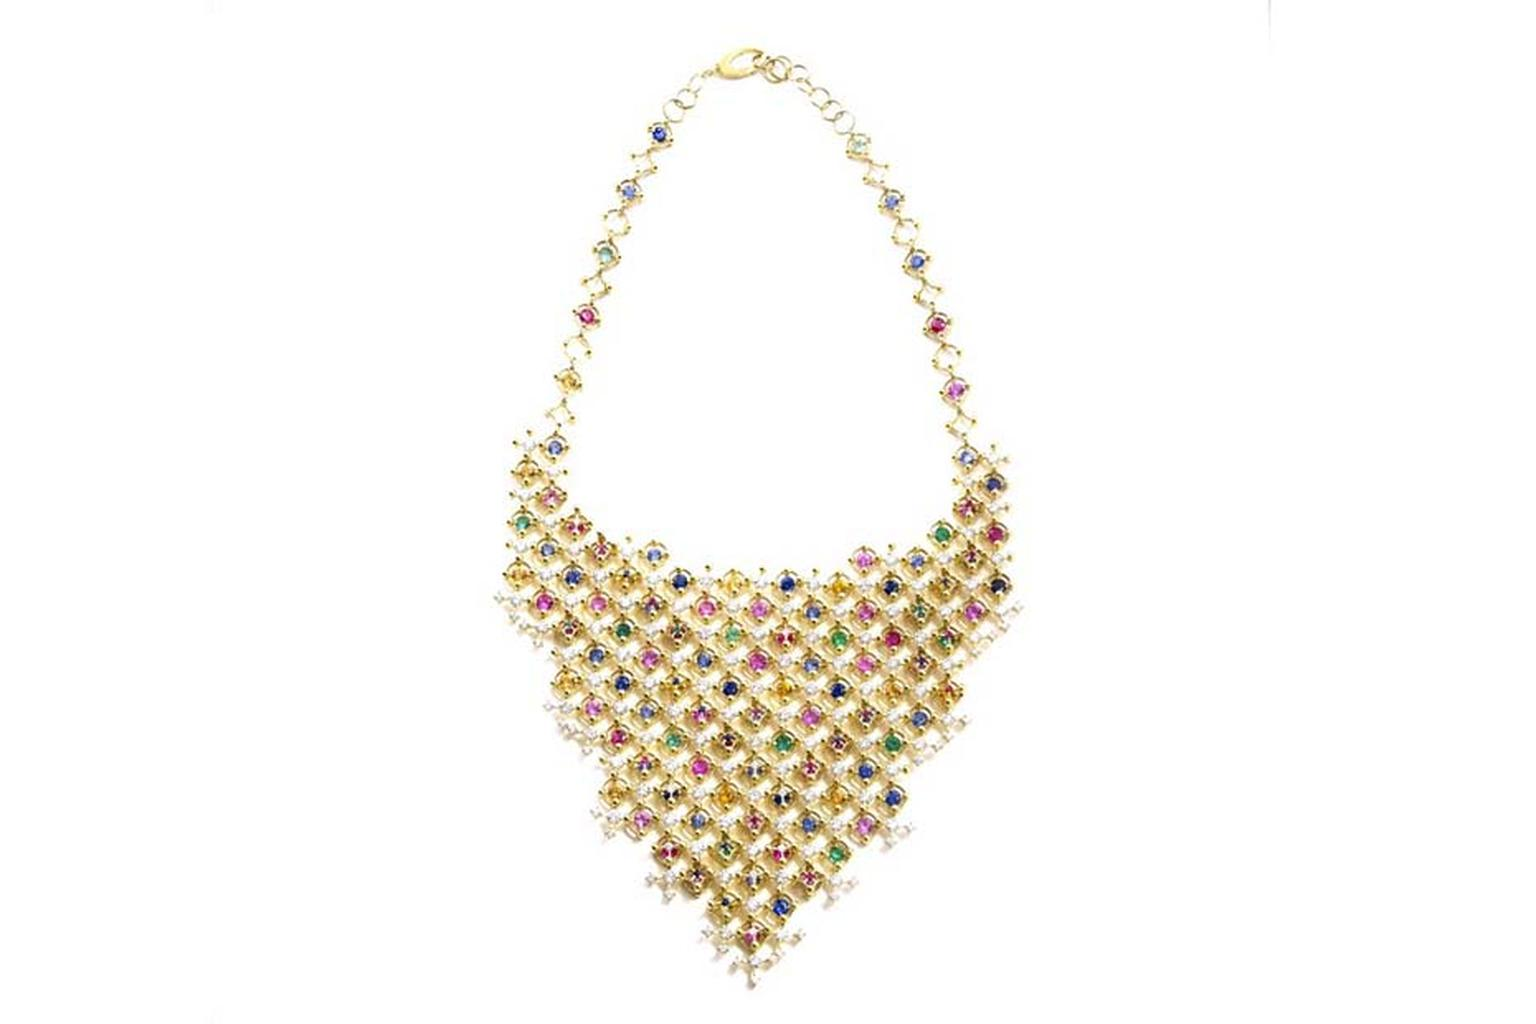 Rainbow jewels: cascades of colour in one of the most covetable jewellery trends of the season